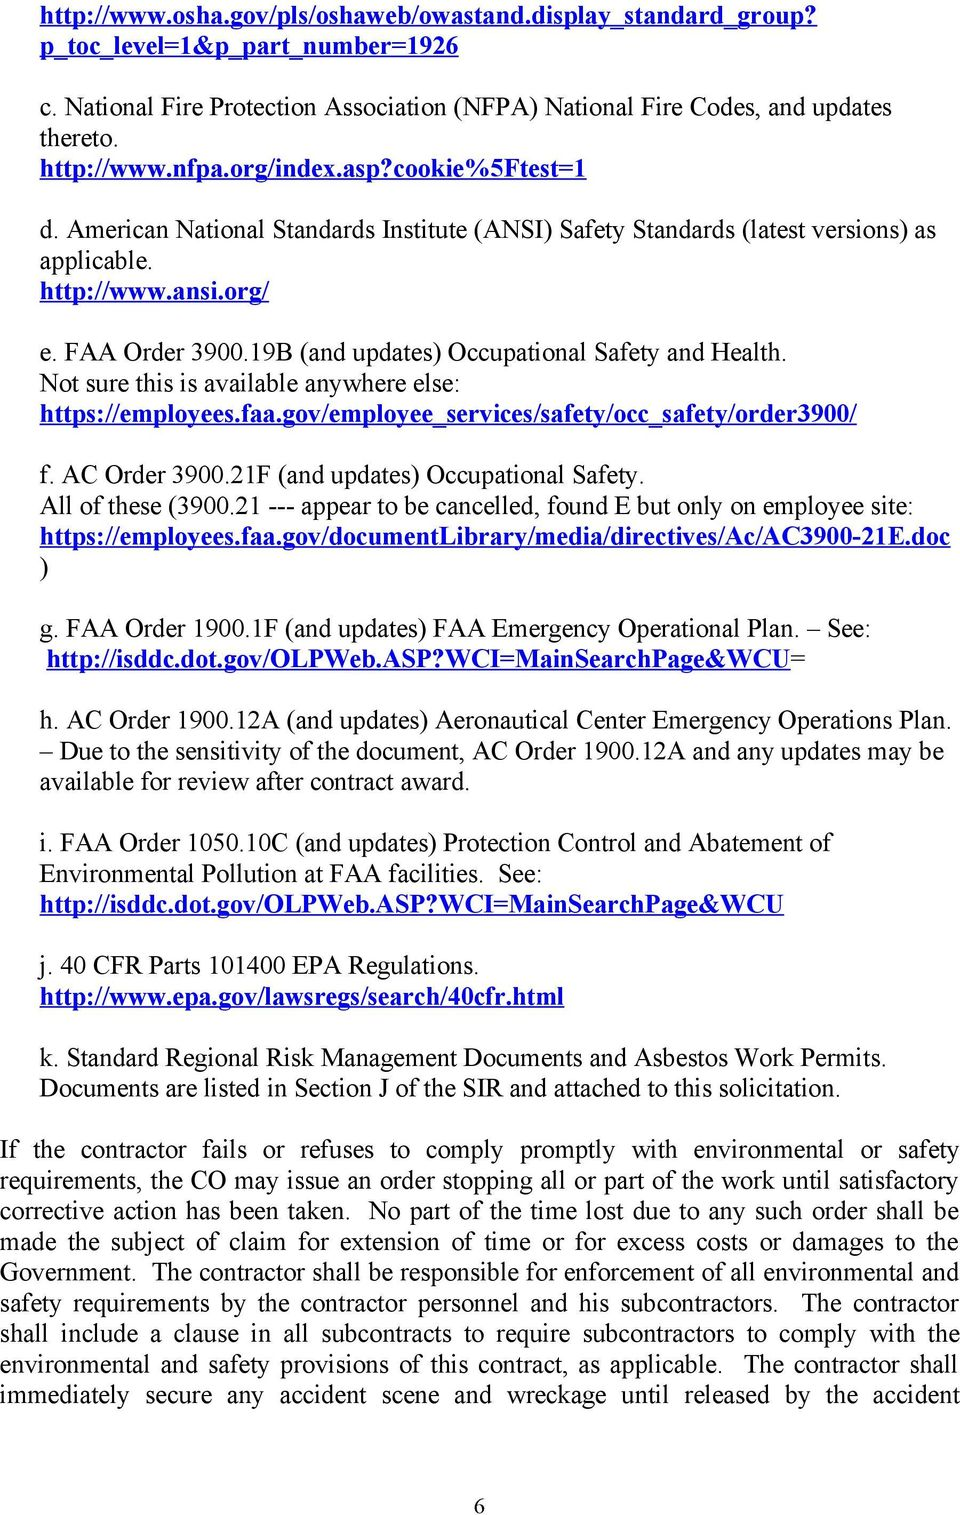 19B (and updates) Occupational Safety and Health. Not sure this is available anywhere else: https://employees.faa.gov/employee_services/safety/occ_safety/order3900/ f. AC Order 3900.